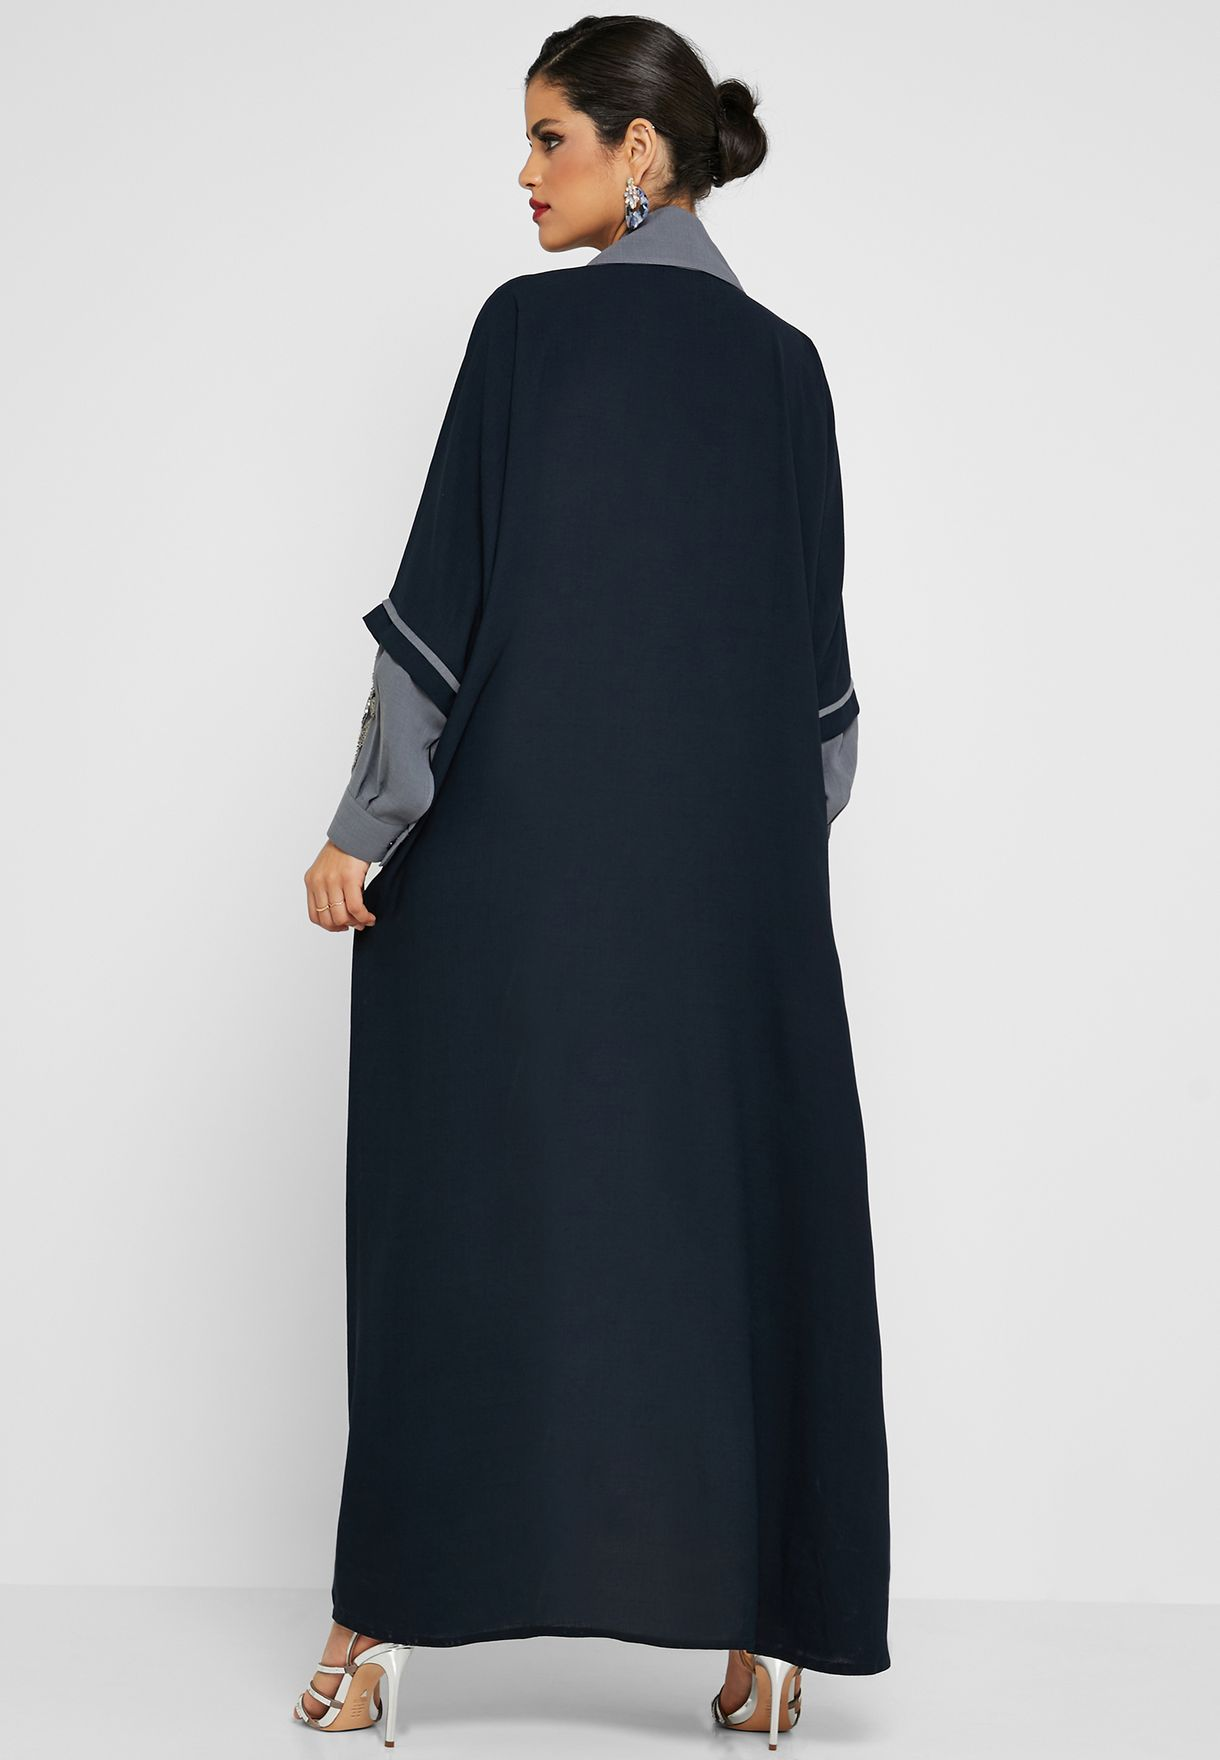 Coat Collar Embellished Abaya